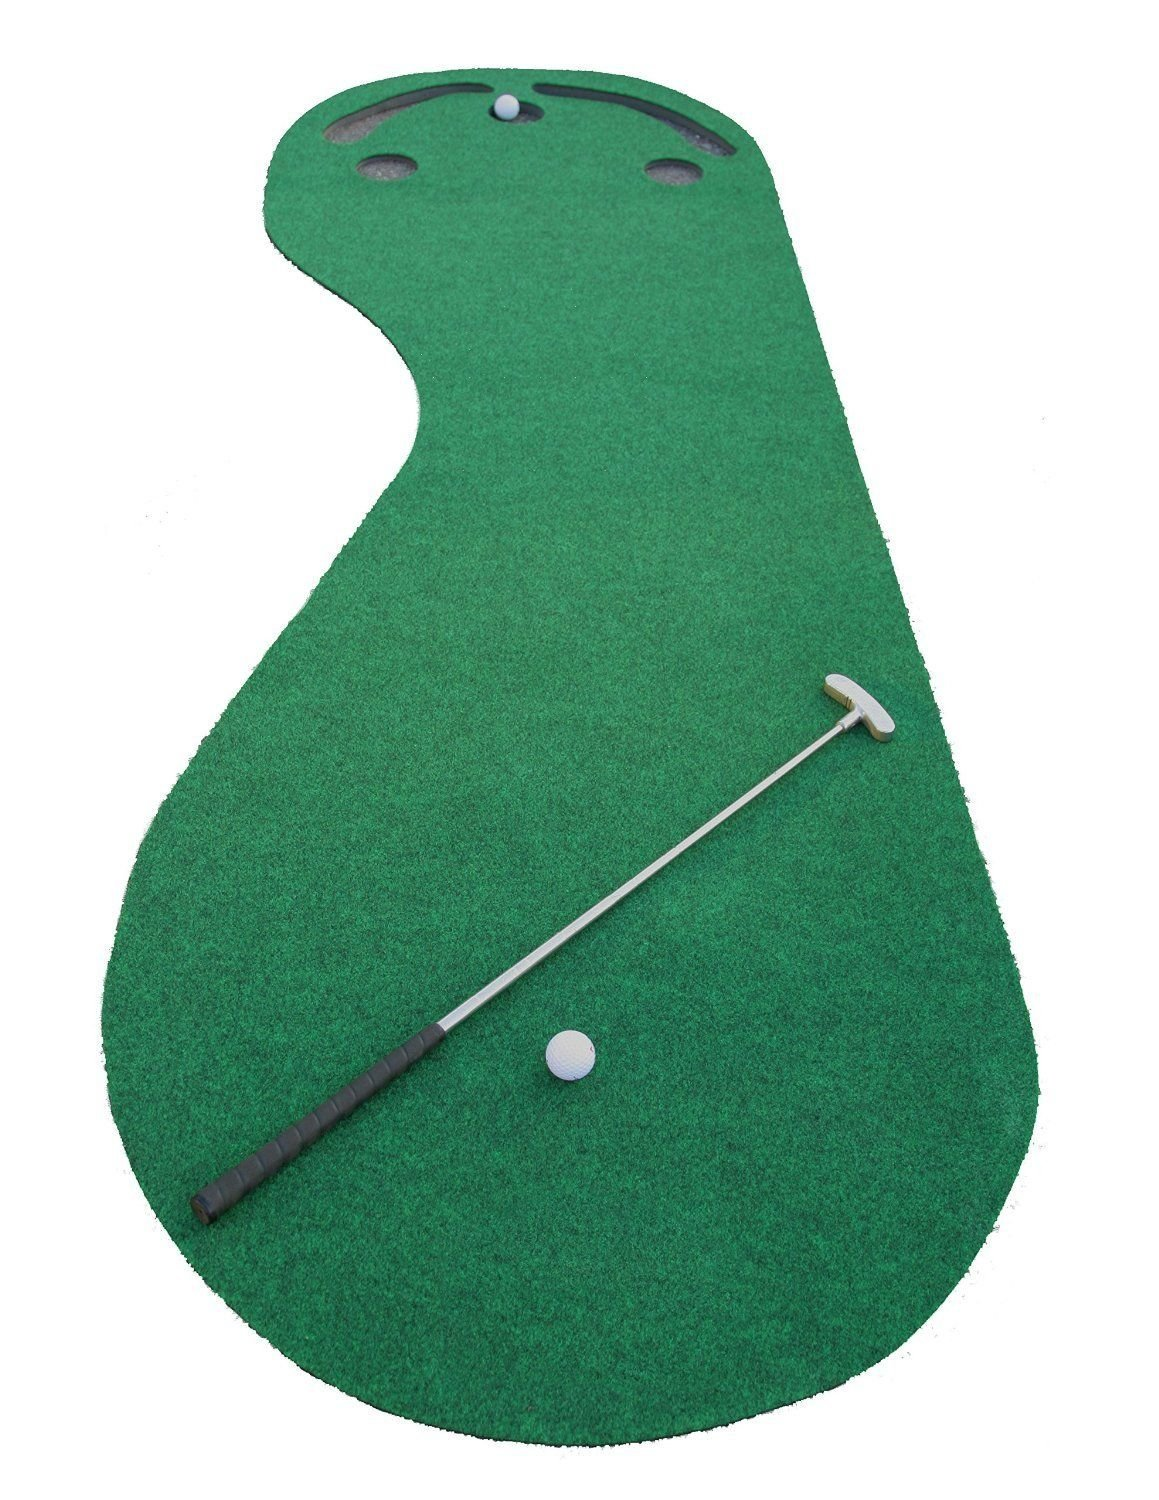 ProActive Golf Practice Cups Training Mat Putting Greens